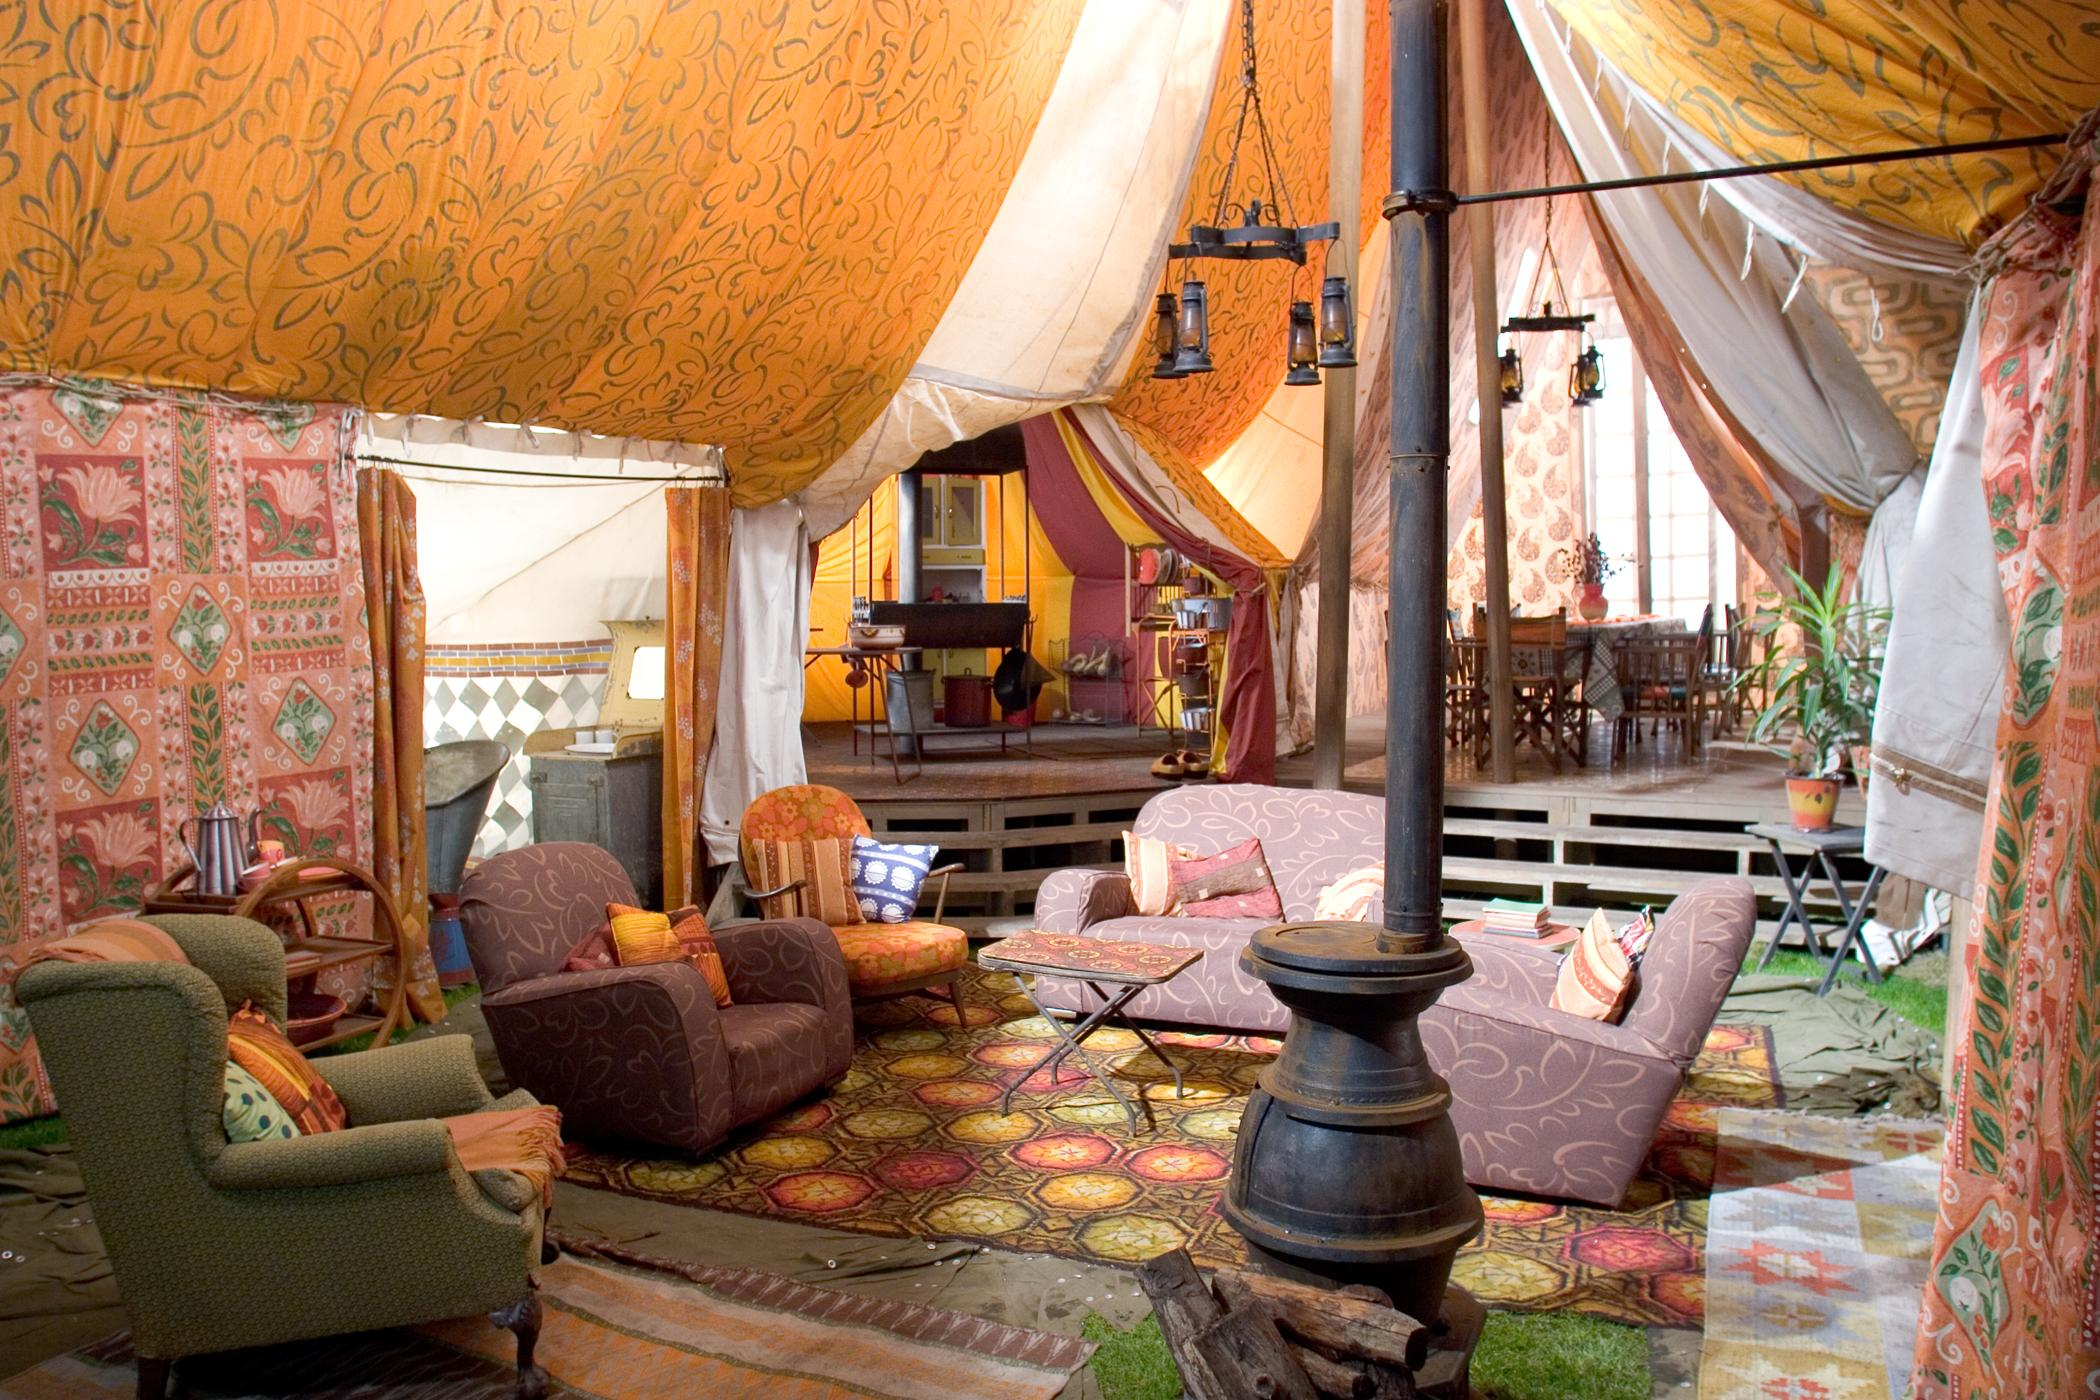 bohemian-interior-design-for-enchanting-living-room-in-the-attic-with-bohemian-interior-in-house-landscaping